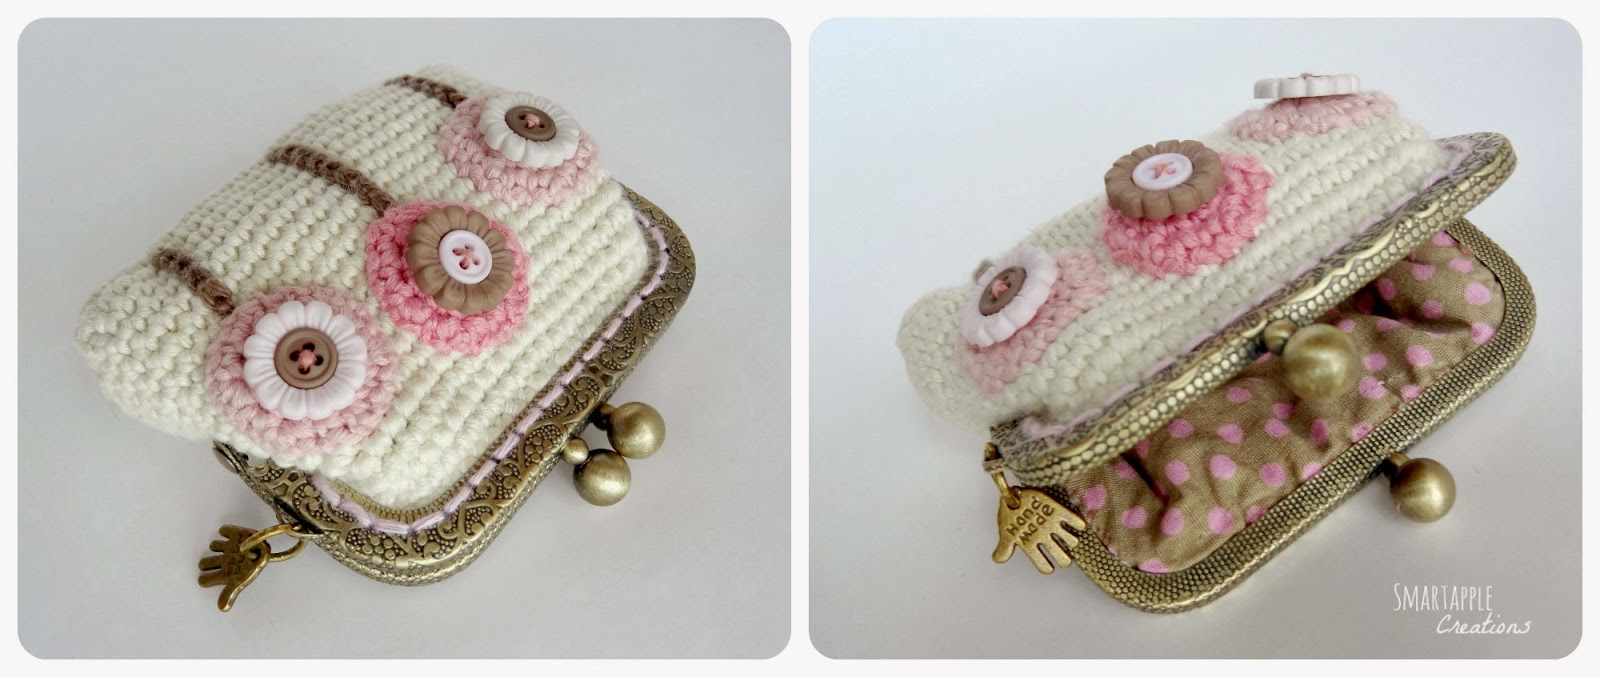 ... - amigurumi and crochet: Crocheted purses, pouches and phone cases